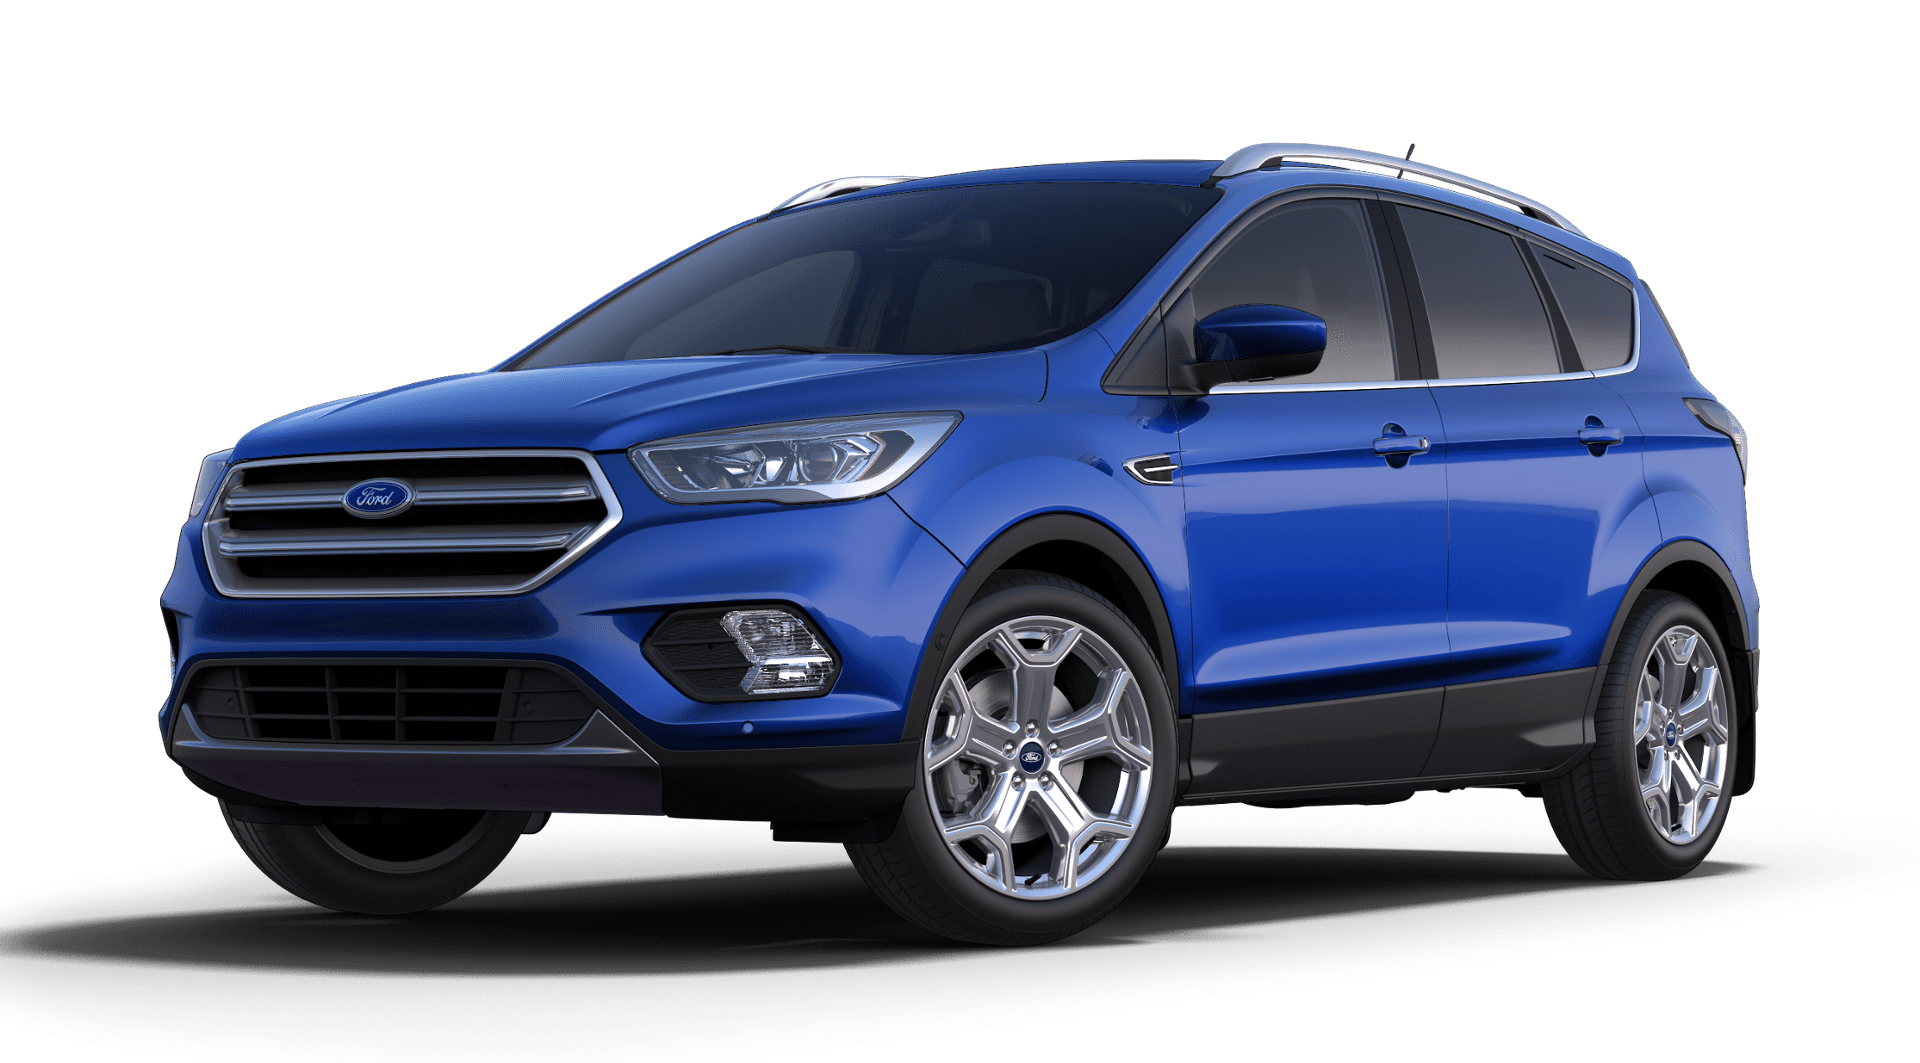 Exterior View Of 2019 Escape Ford Escape Ford Hybrid Car